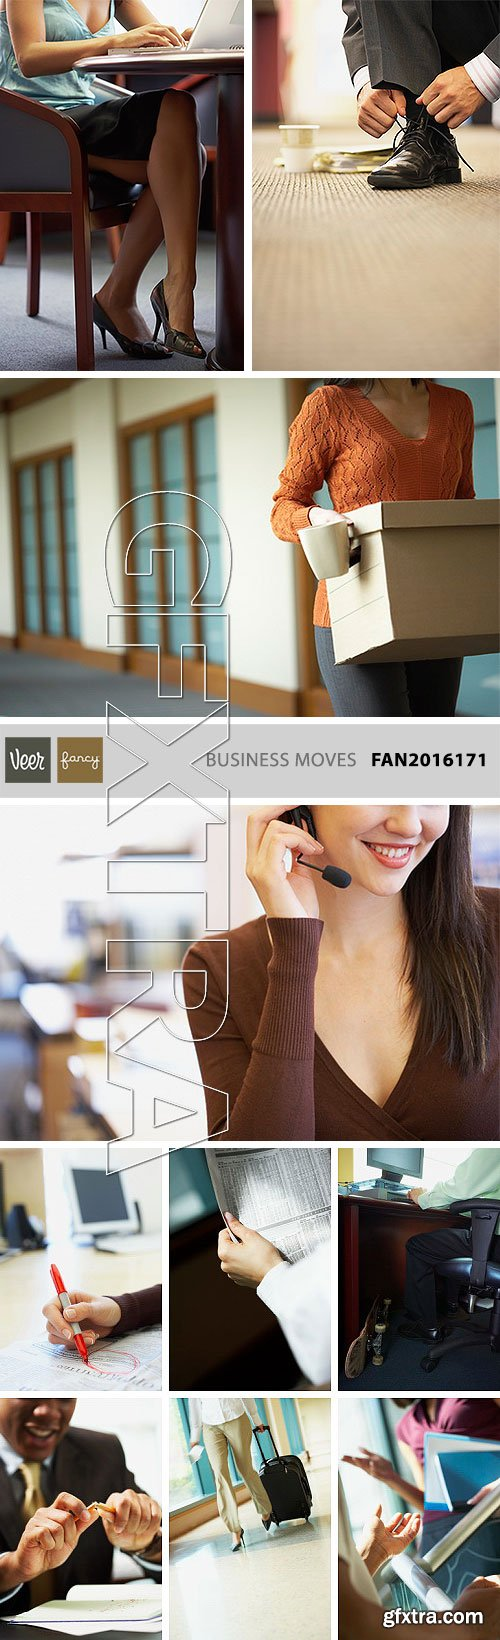 Veer Fancy FAN2016171 Business Moves